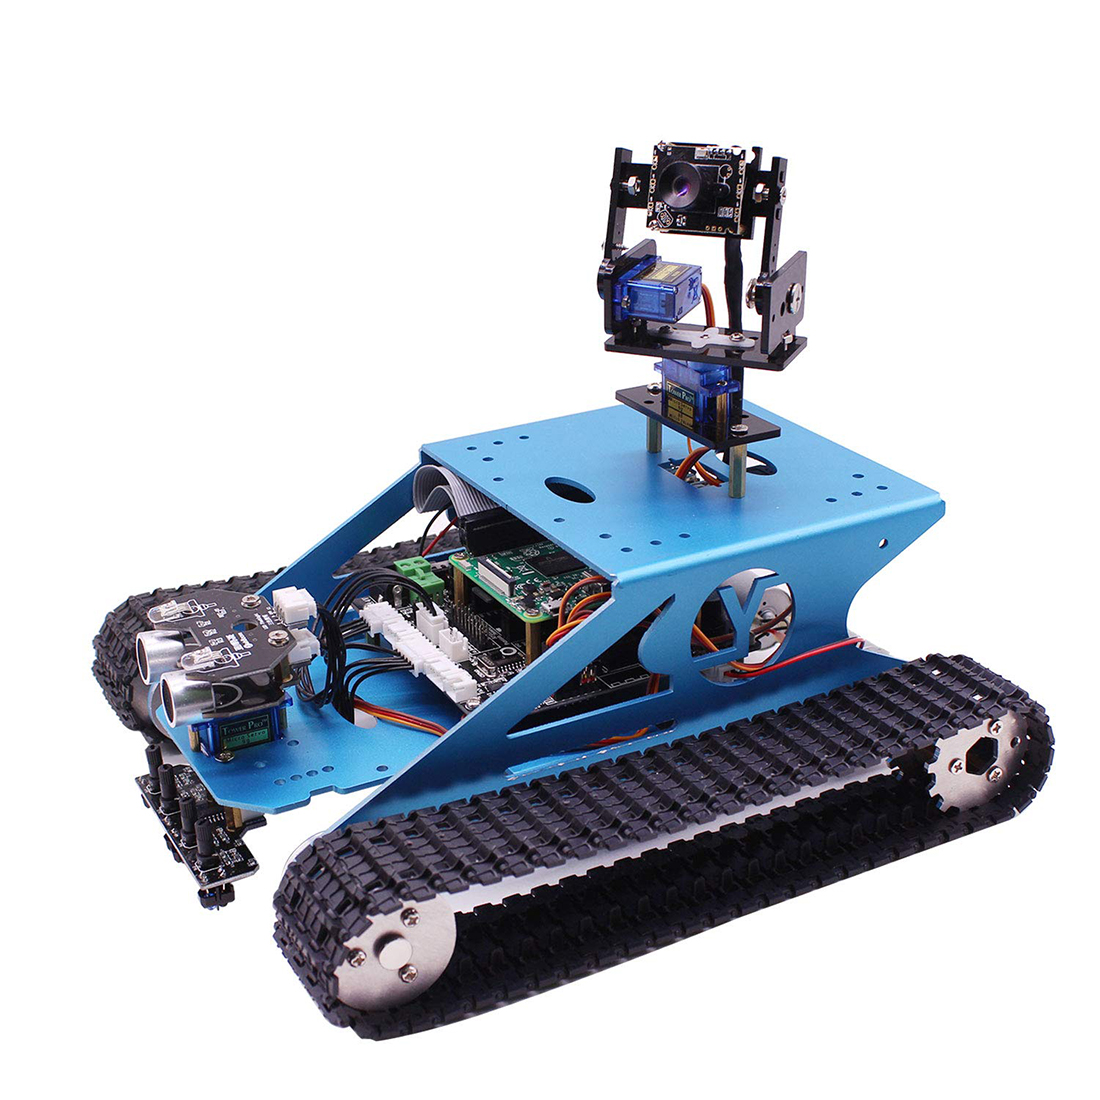 Raspberry Pi Tank Smart DIY Programming Robot Toy Kit WiFi Wireless Video Kids Toy Compatible RPI 3B/3B+(Without Raspberry Pi)(China)